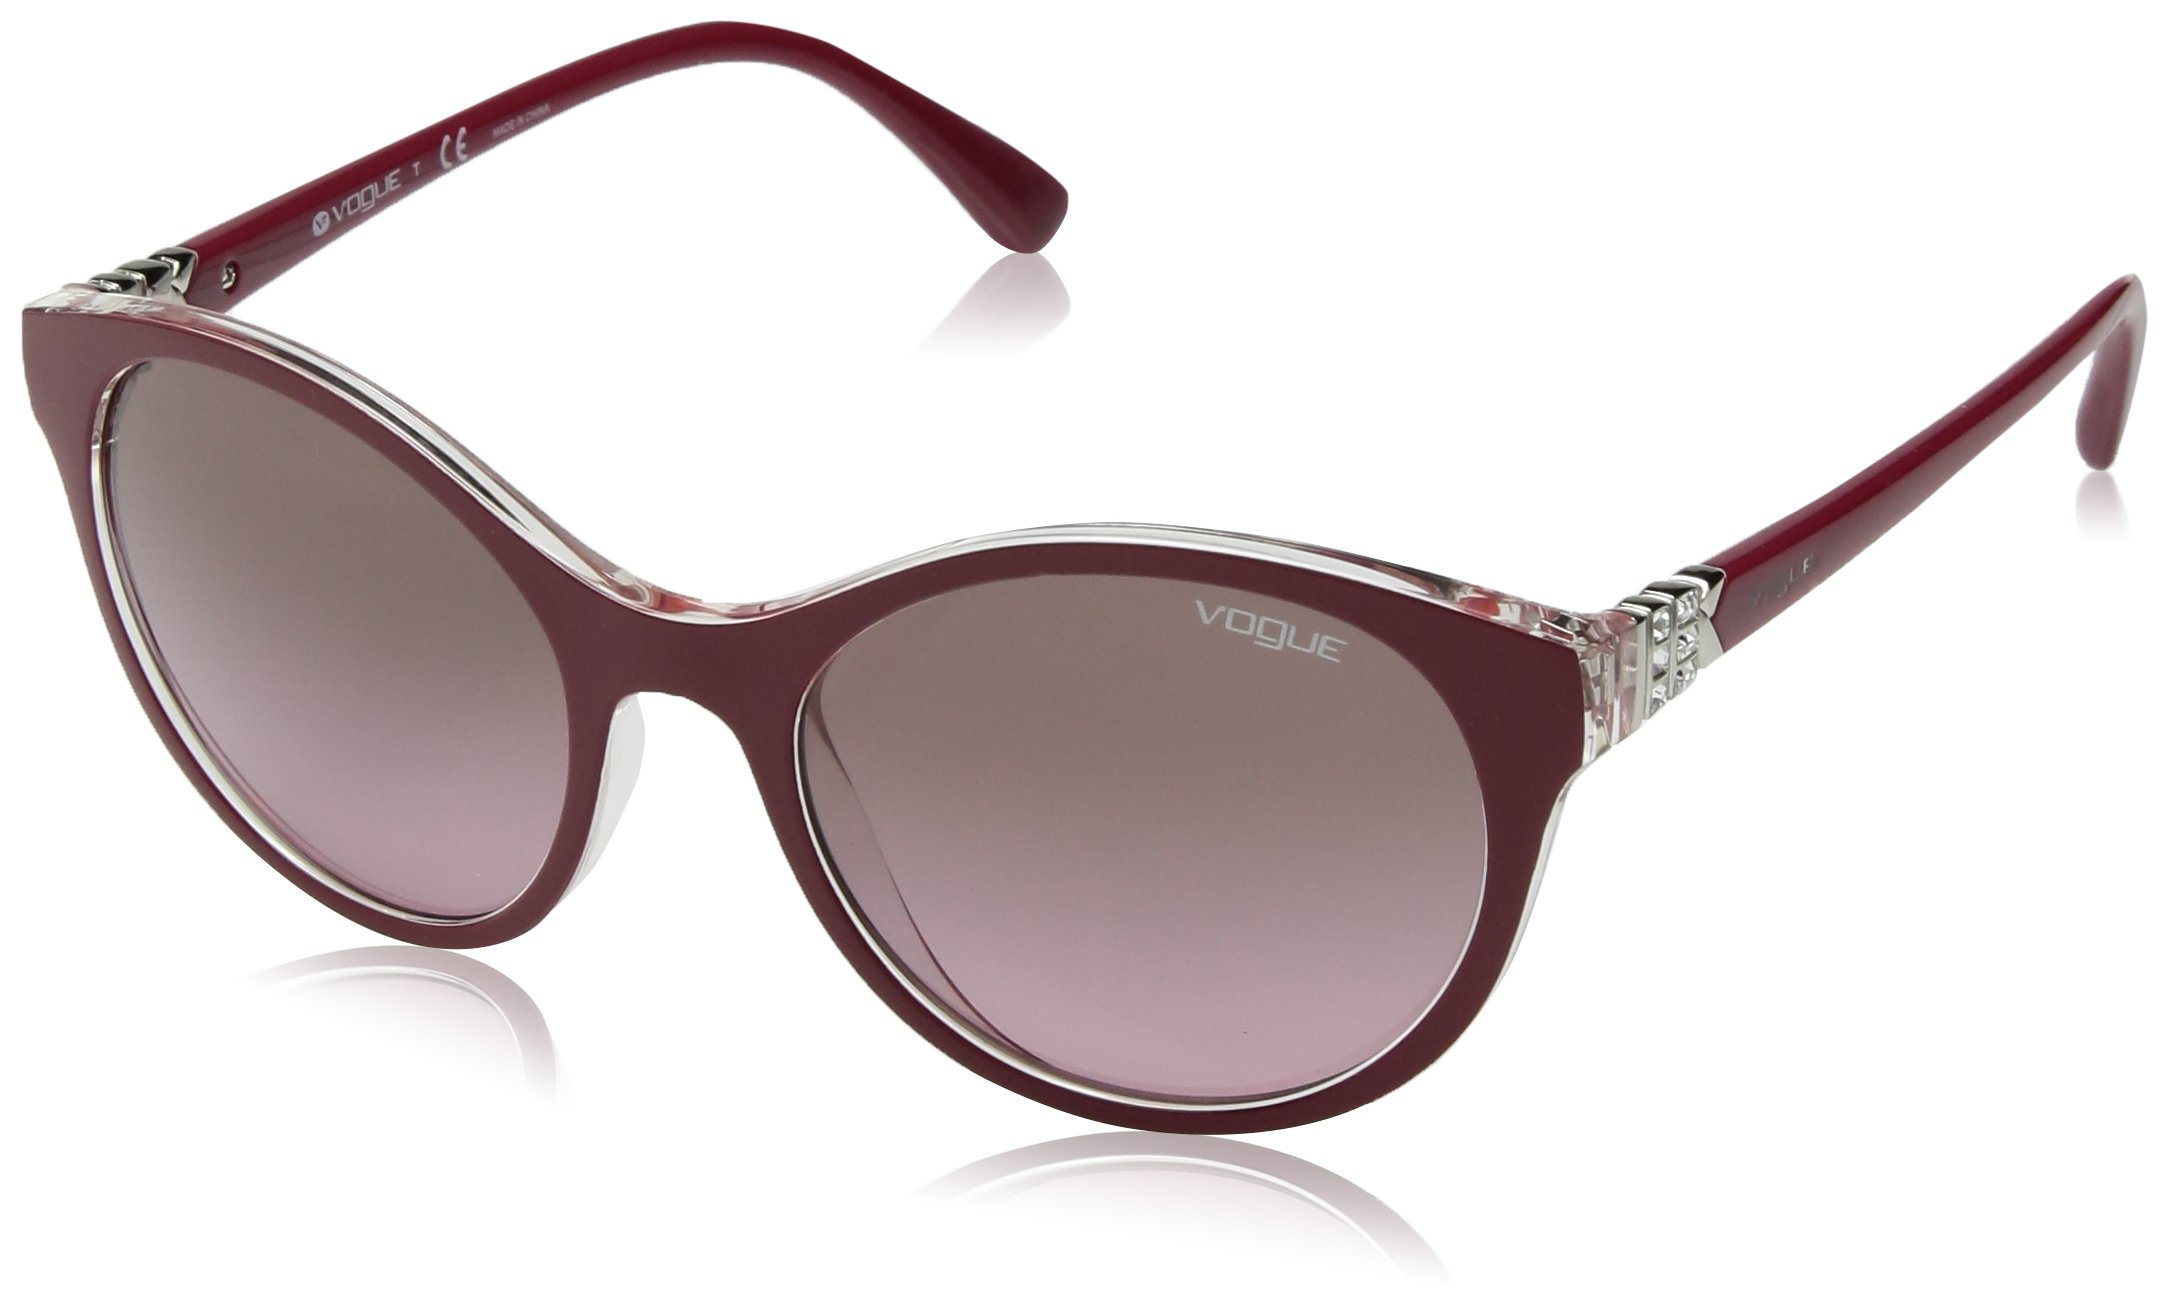 Ray-Ban Women's Plastic Woman Round Sunglasses, Top Dark Red/Serigraphy, 52 mm